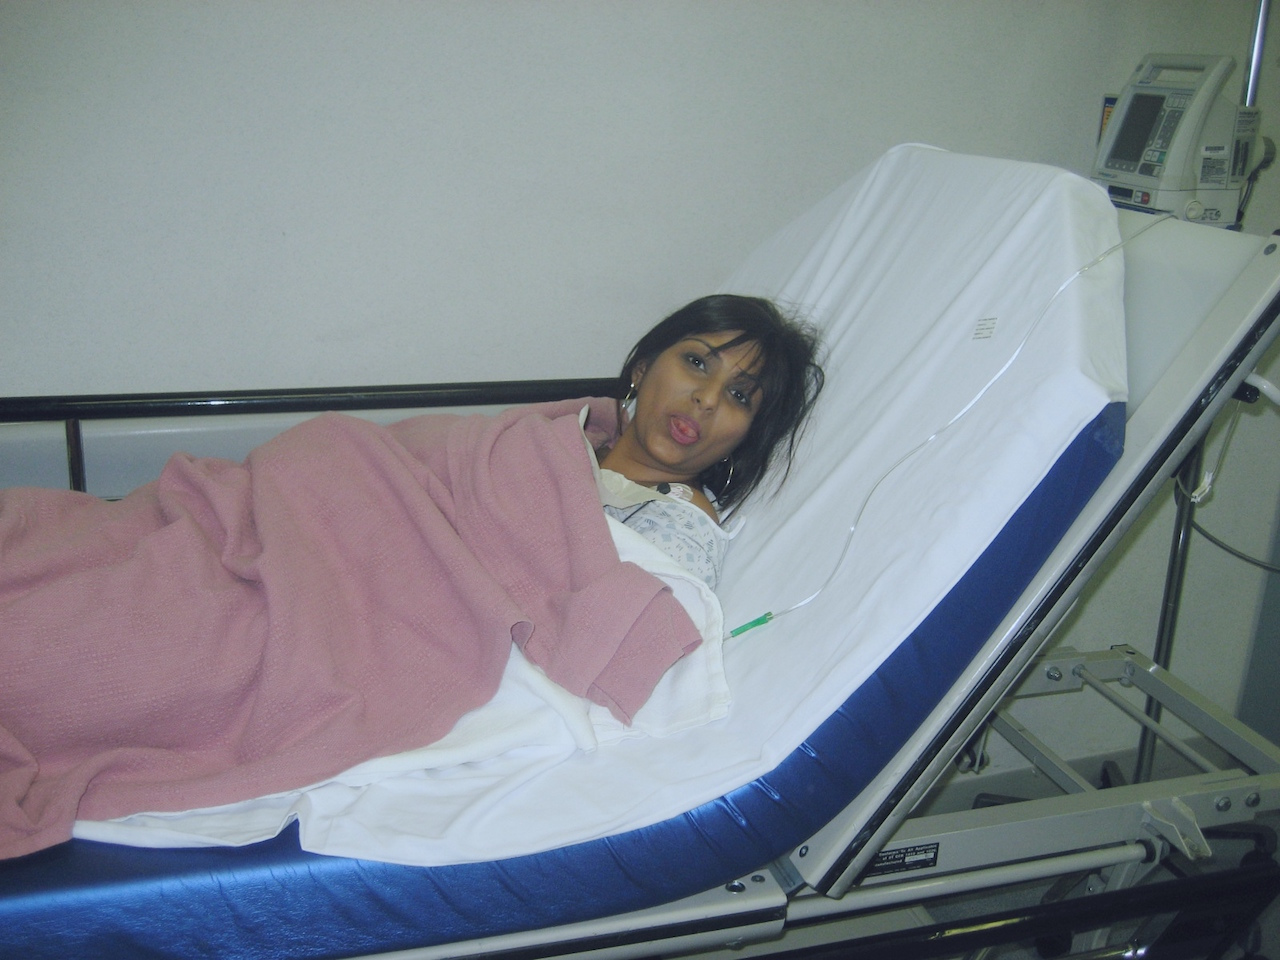 Epilepsy essay-Meera Solanki Estrada the writer lies in a hospital bed showing her inured tongue